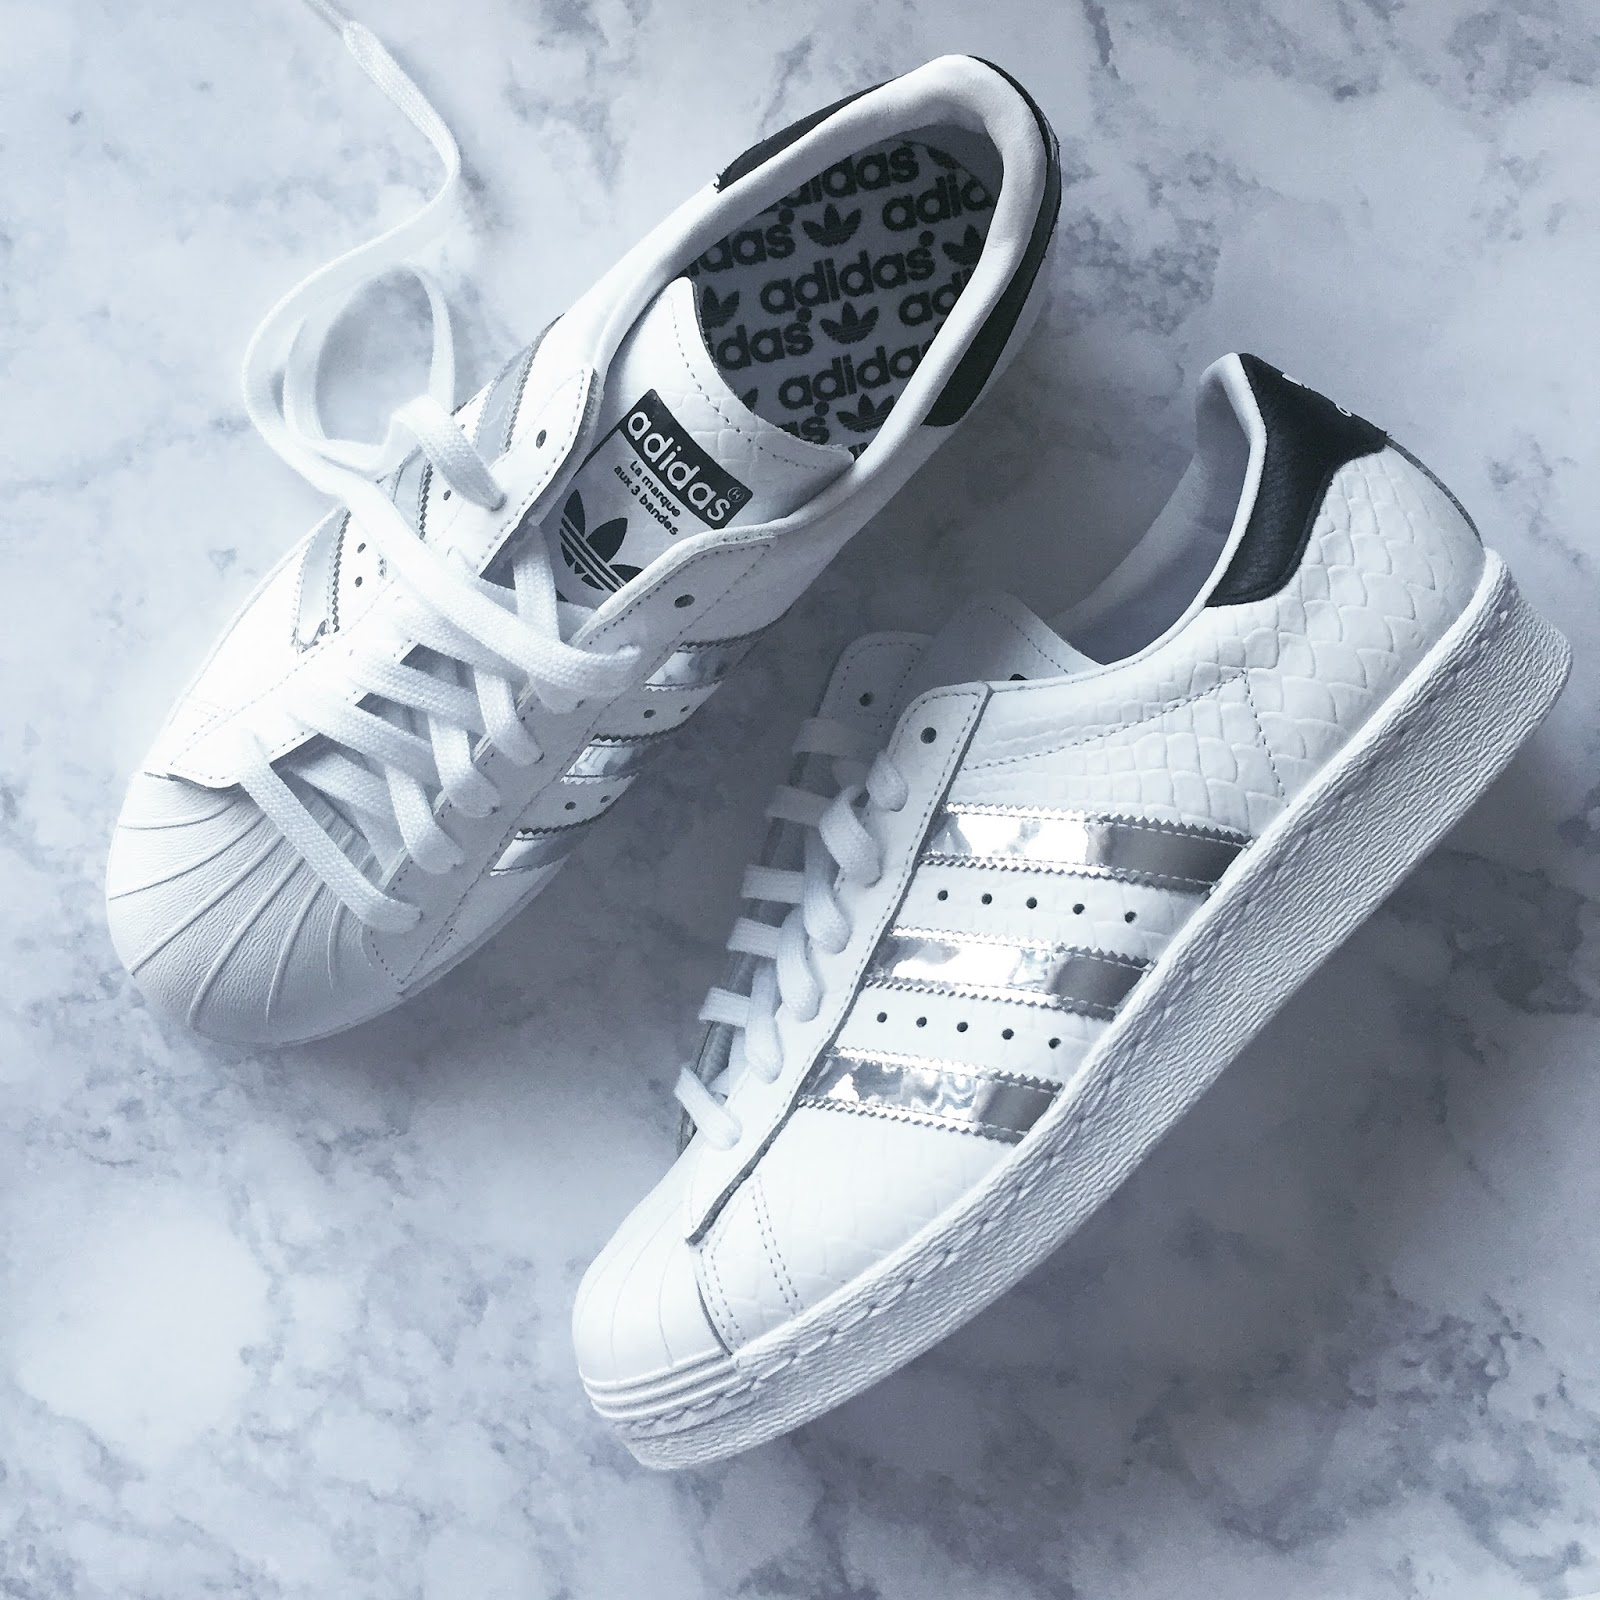 08d944edc9e5 CUSTOMIZED ADIDAS SNEAKERS - Cass Dimicco